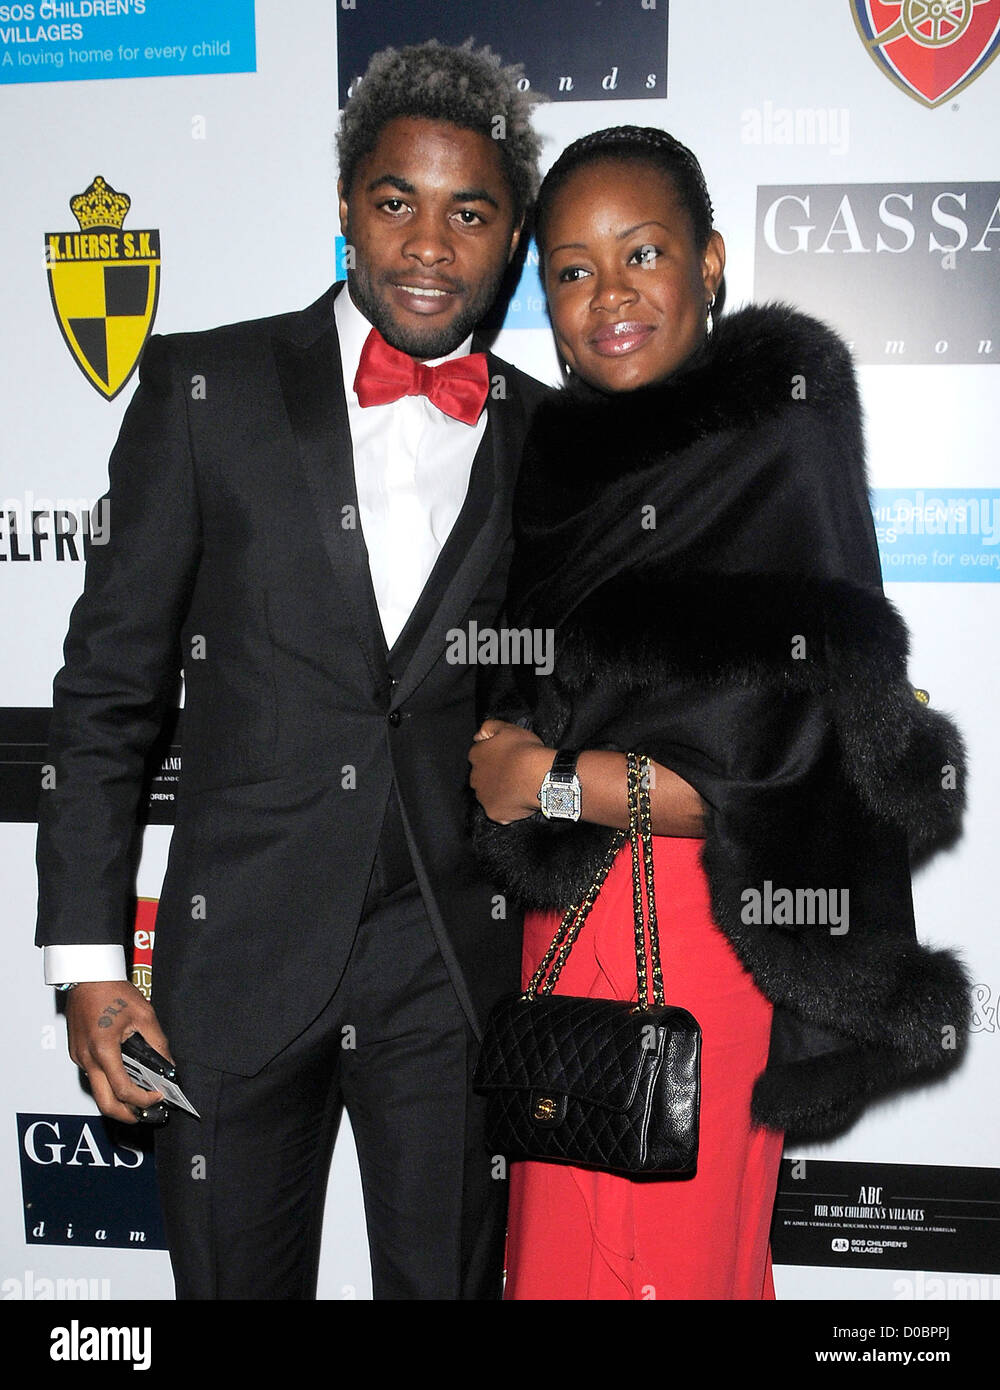 Arsenal's holding midfielder Alex Song Billong and his girlfriend arriving at ABC SOS Ball. London, England - Stock Image